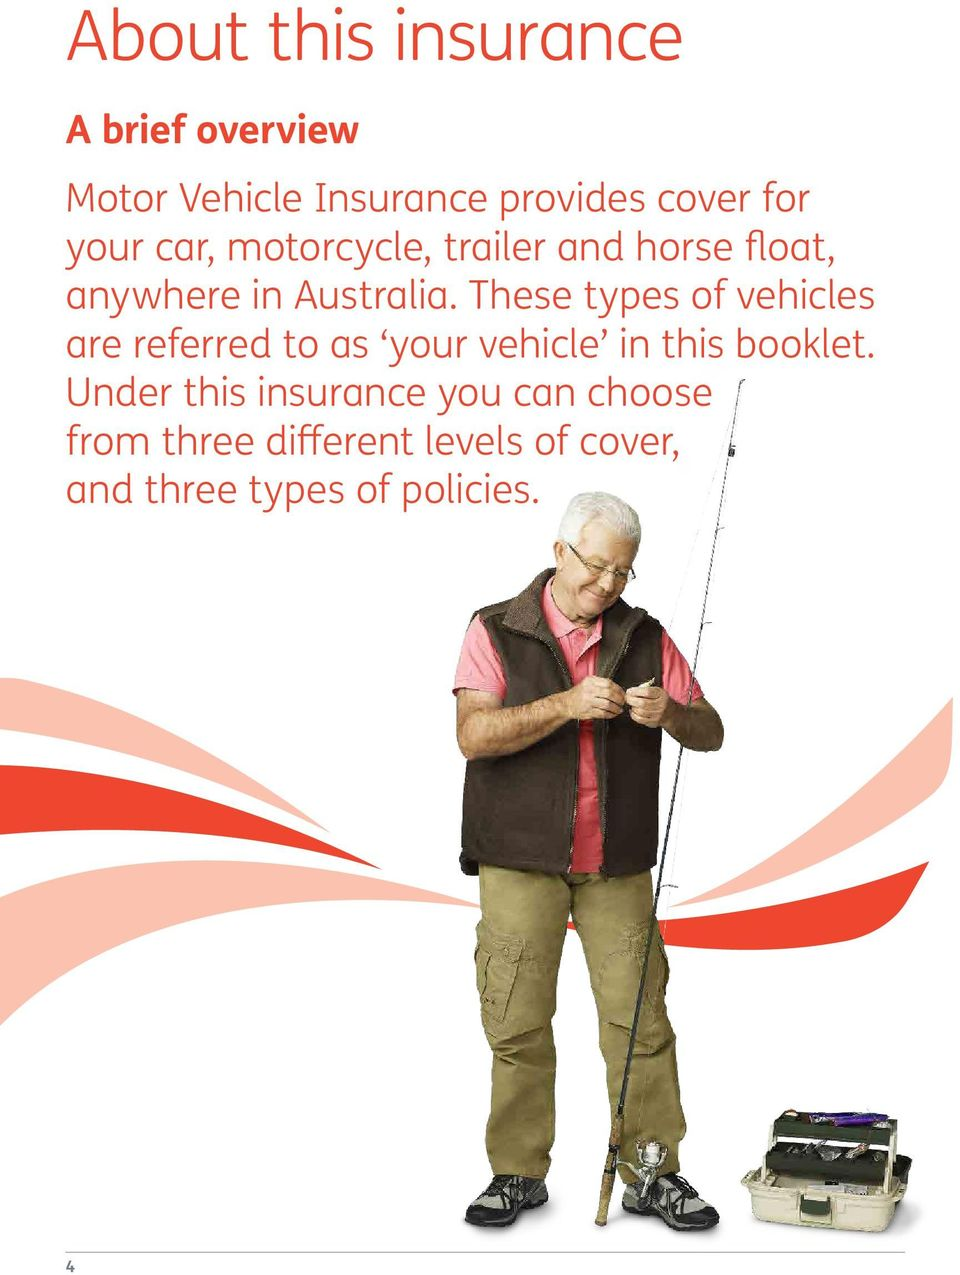 These types of vehicles are referred to as your vehicle in this booklet.